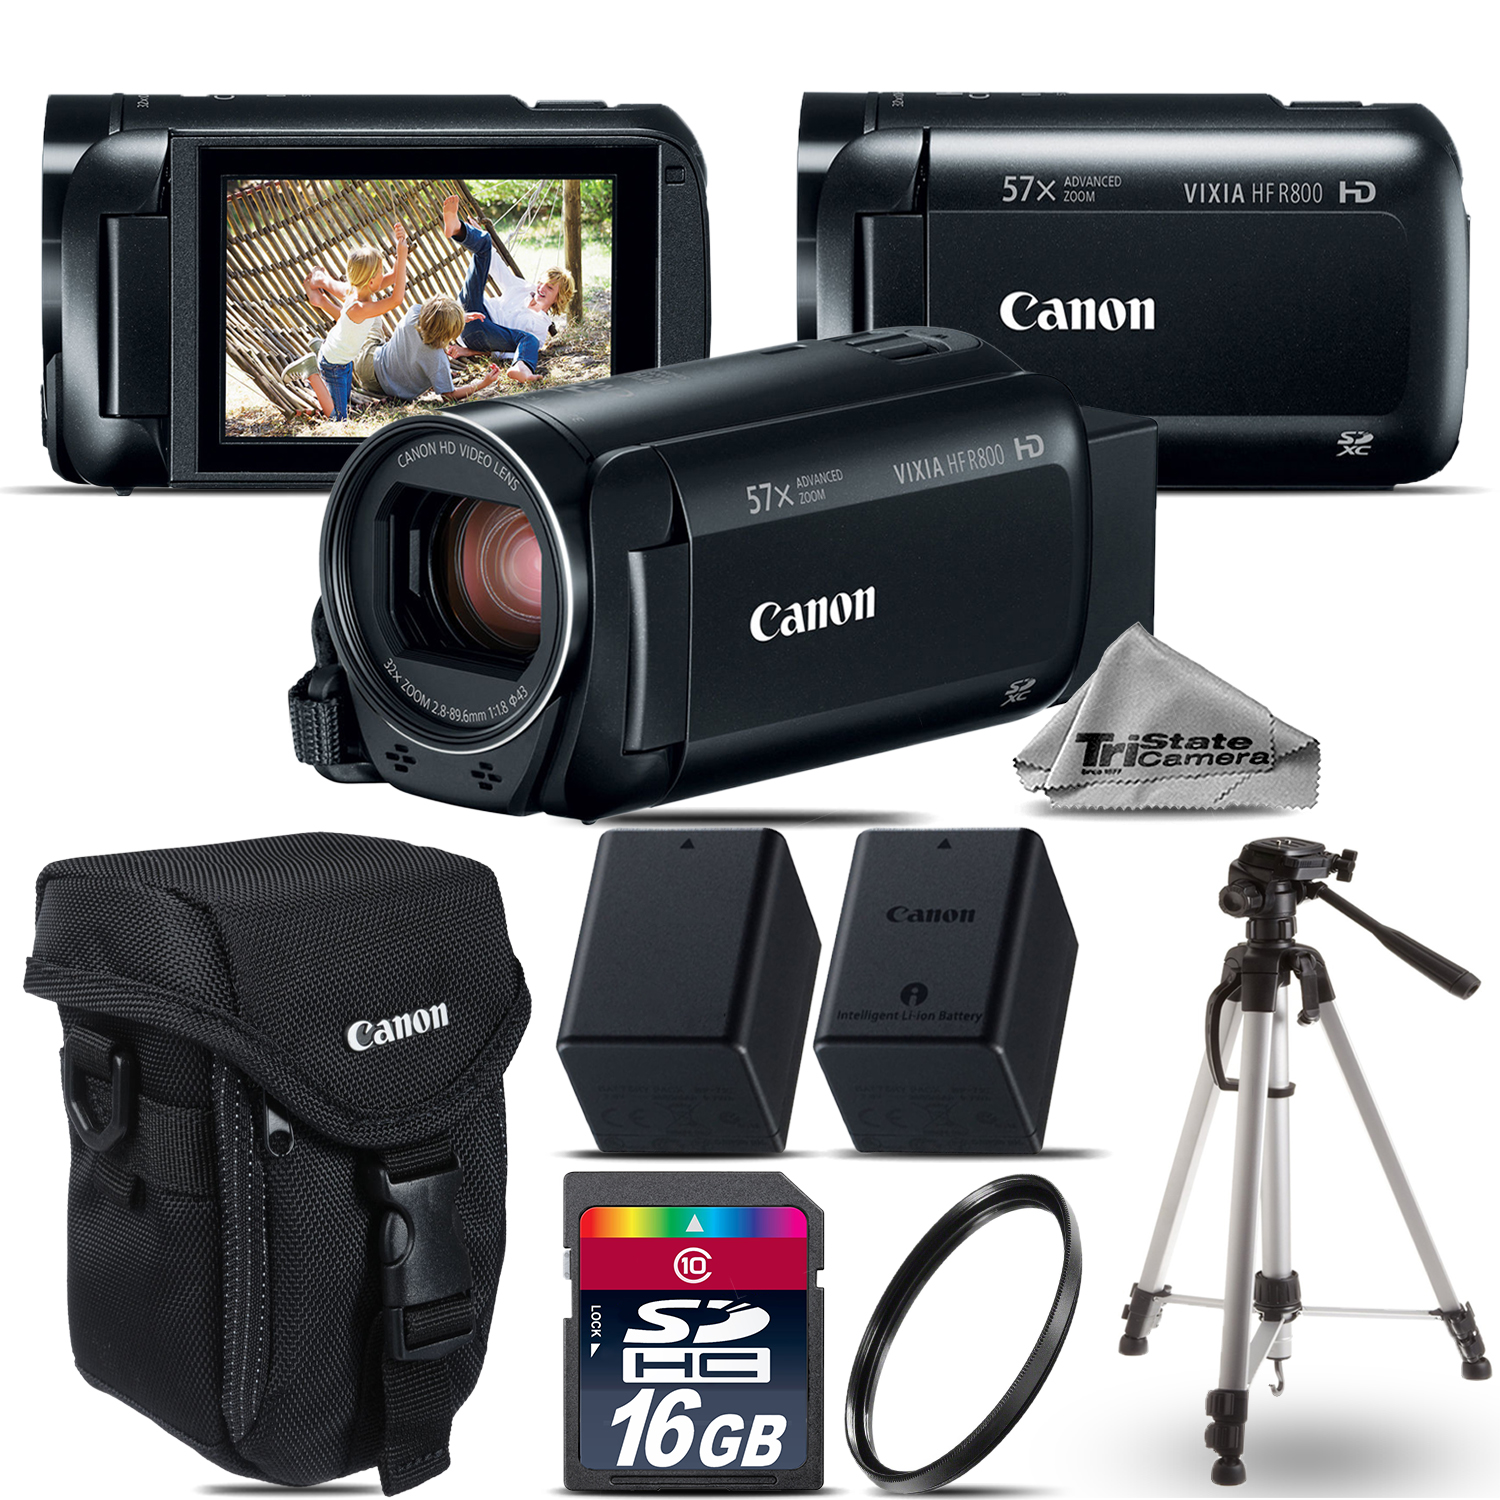 VIXIA HF R 800 57x Camcorder + EXT BATT + 16GB - Essential Bundle Kit *FREE SHIPPING*